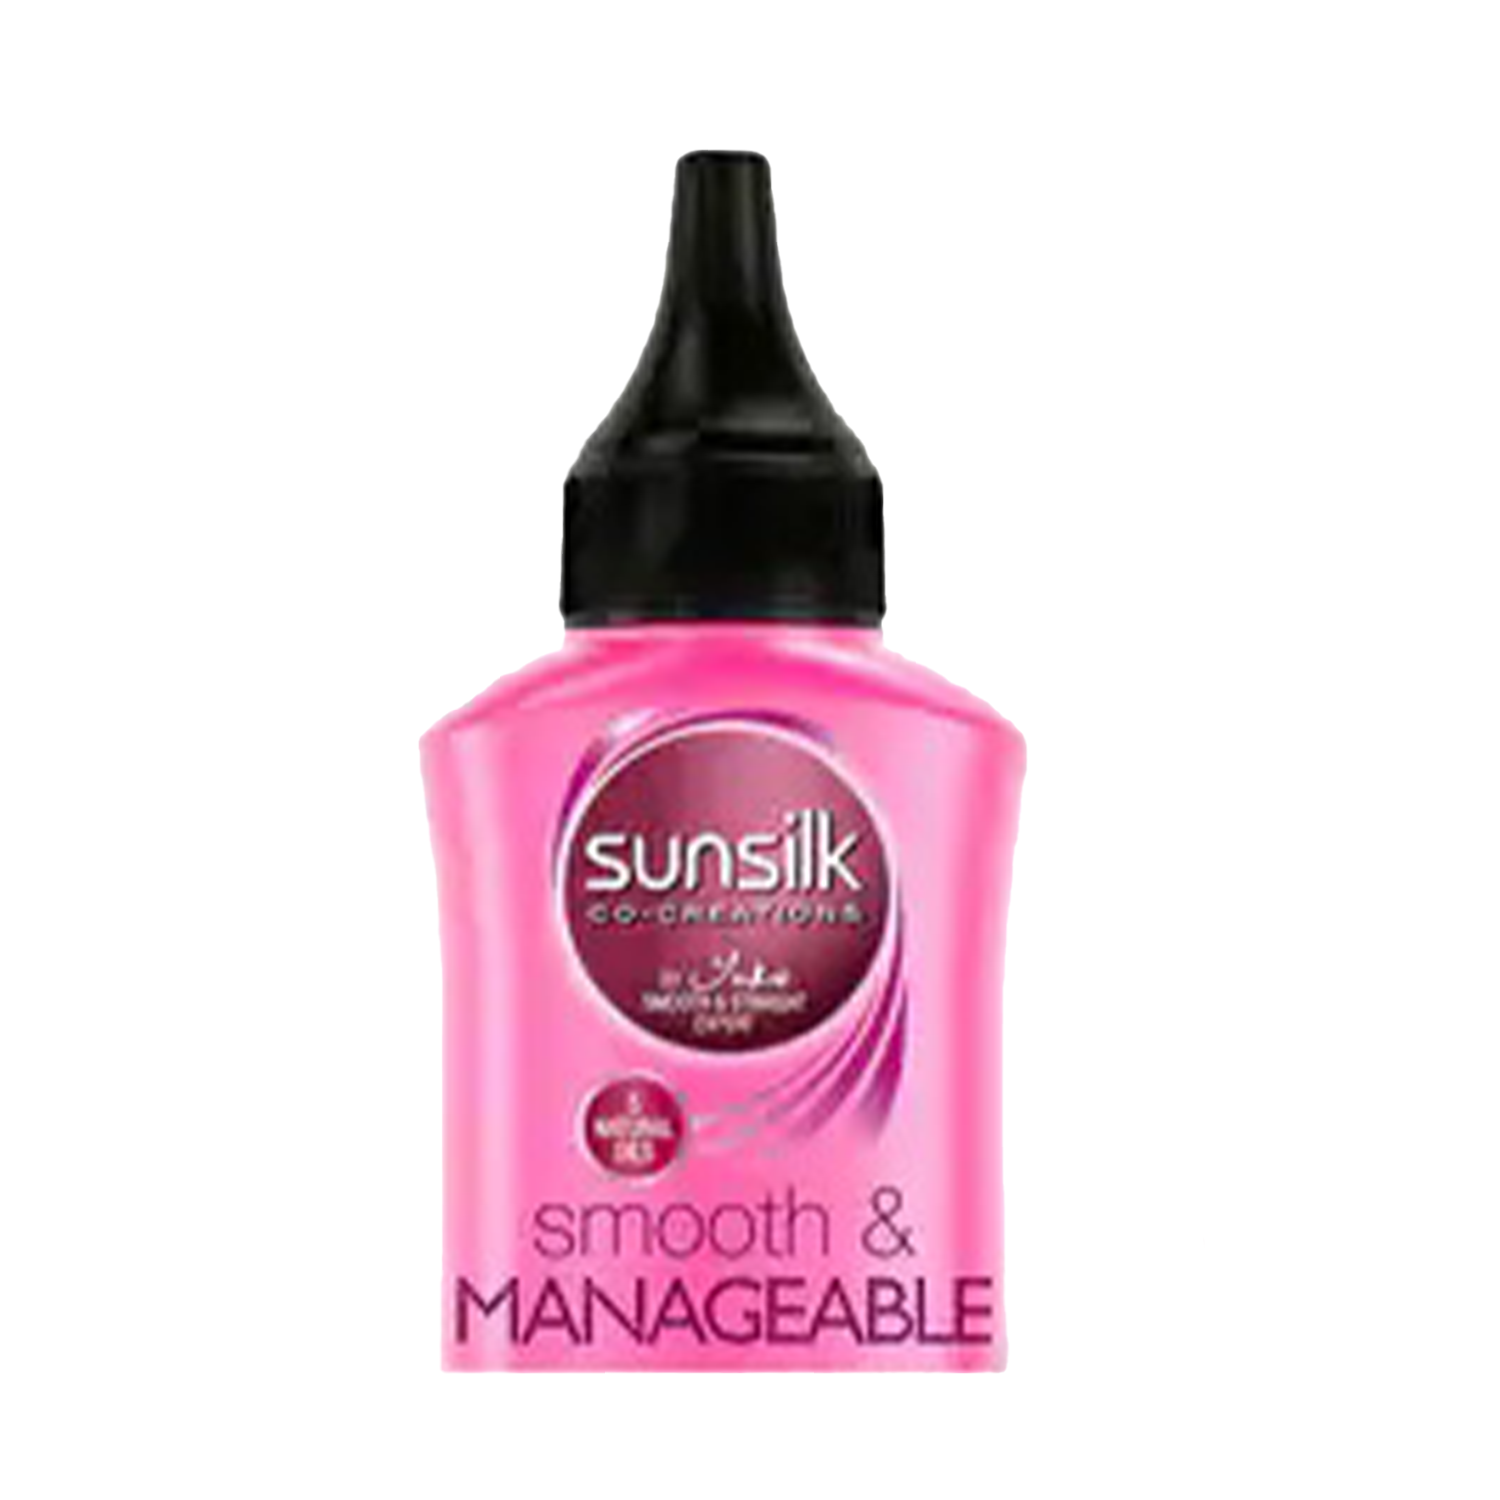 Sunsilk Lo Smooth & Manageable 40Ml